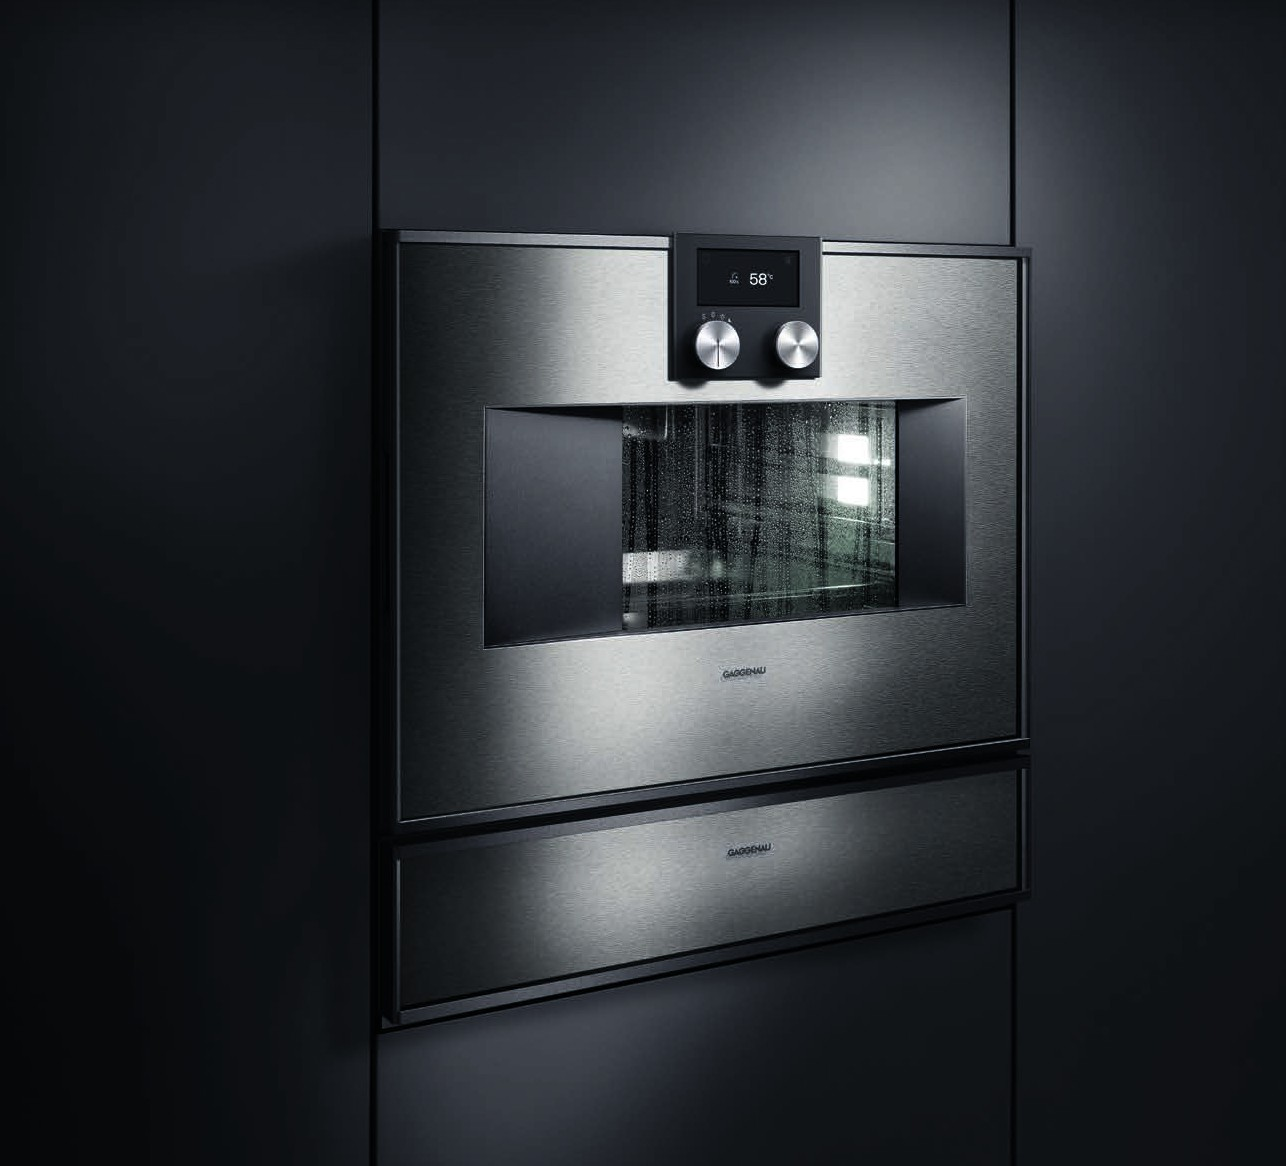 gaggenau combisteam oven with vacuum drawer. Black Bedroom Furniture Sets. Home Design Ideas